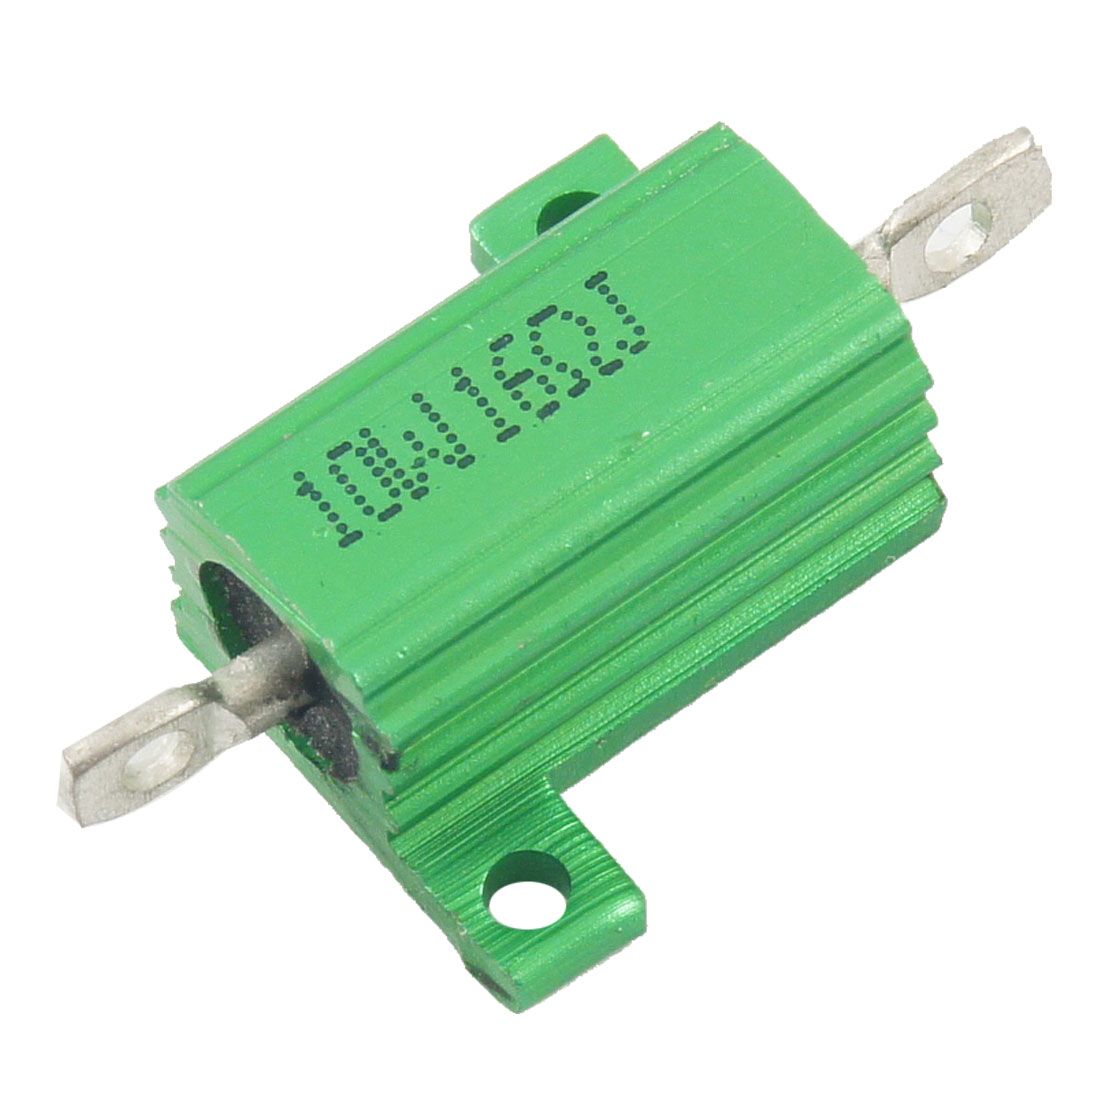 Green 10 Watt 16 Ohm 5% Aluminum Shell Wire Wound Resistor